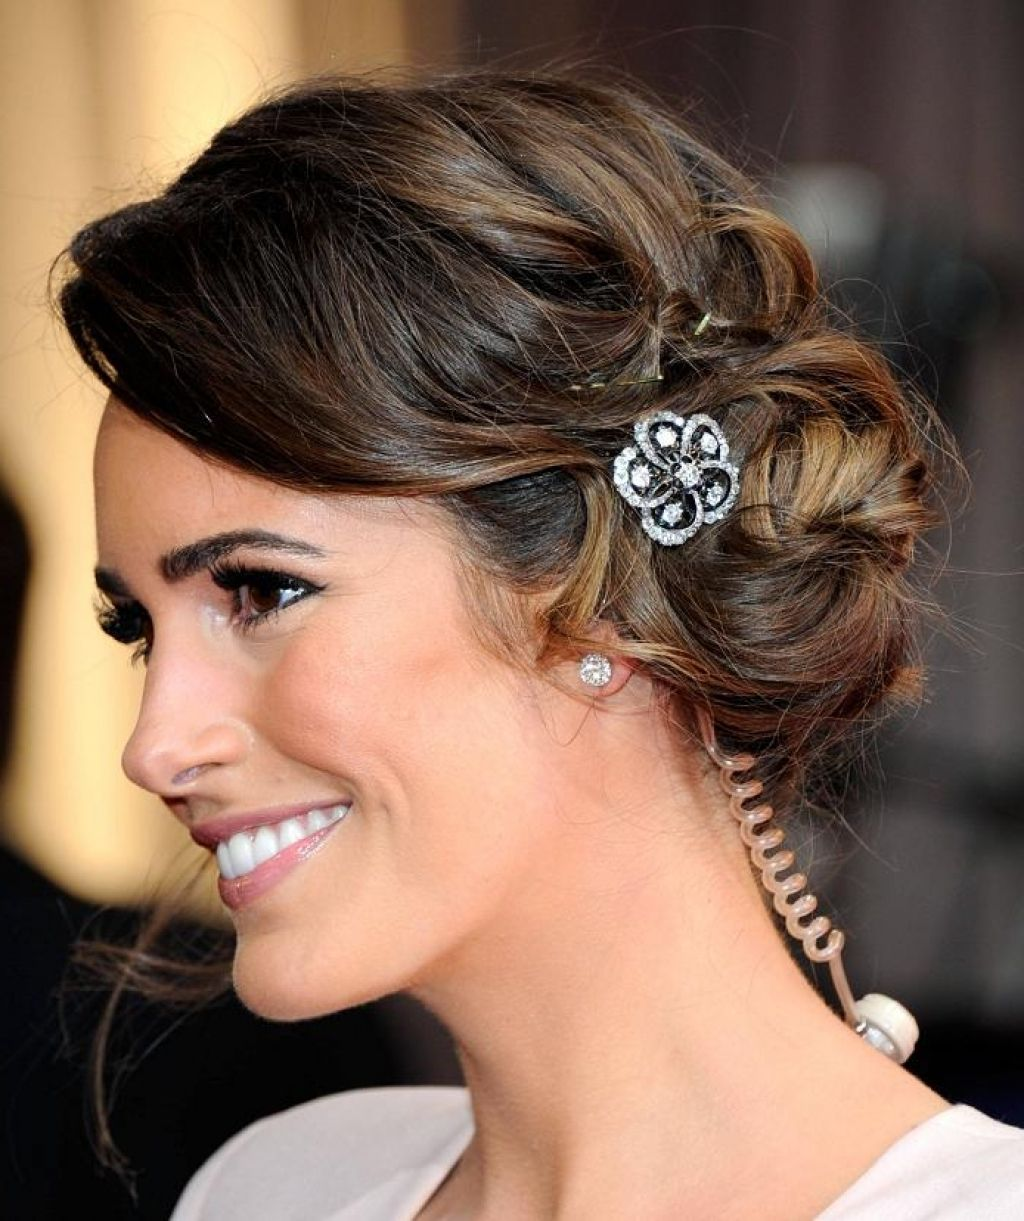 awesome wedding hairstyle ideas for wedding guests hairzstyle short ...